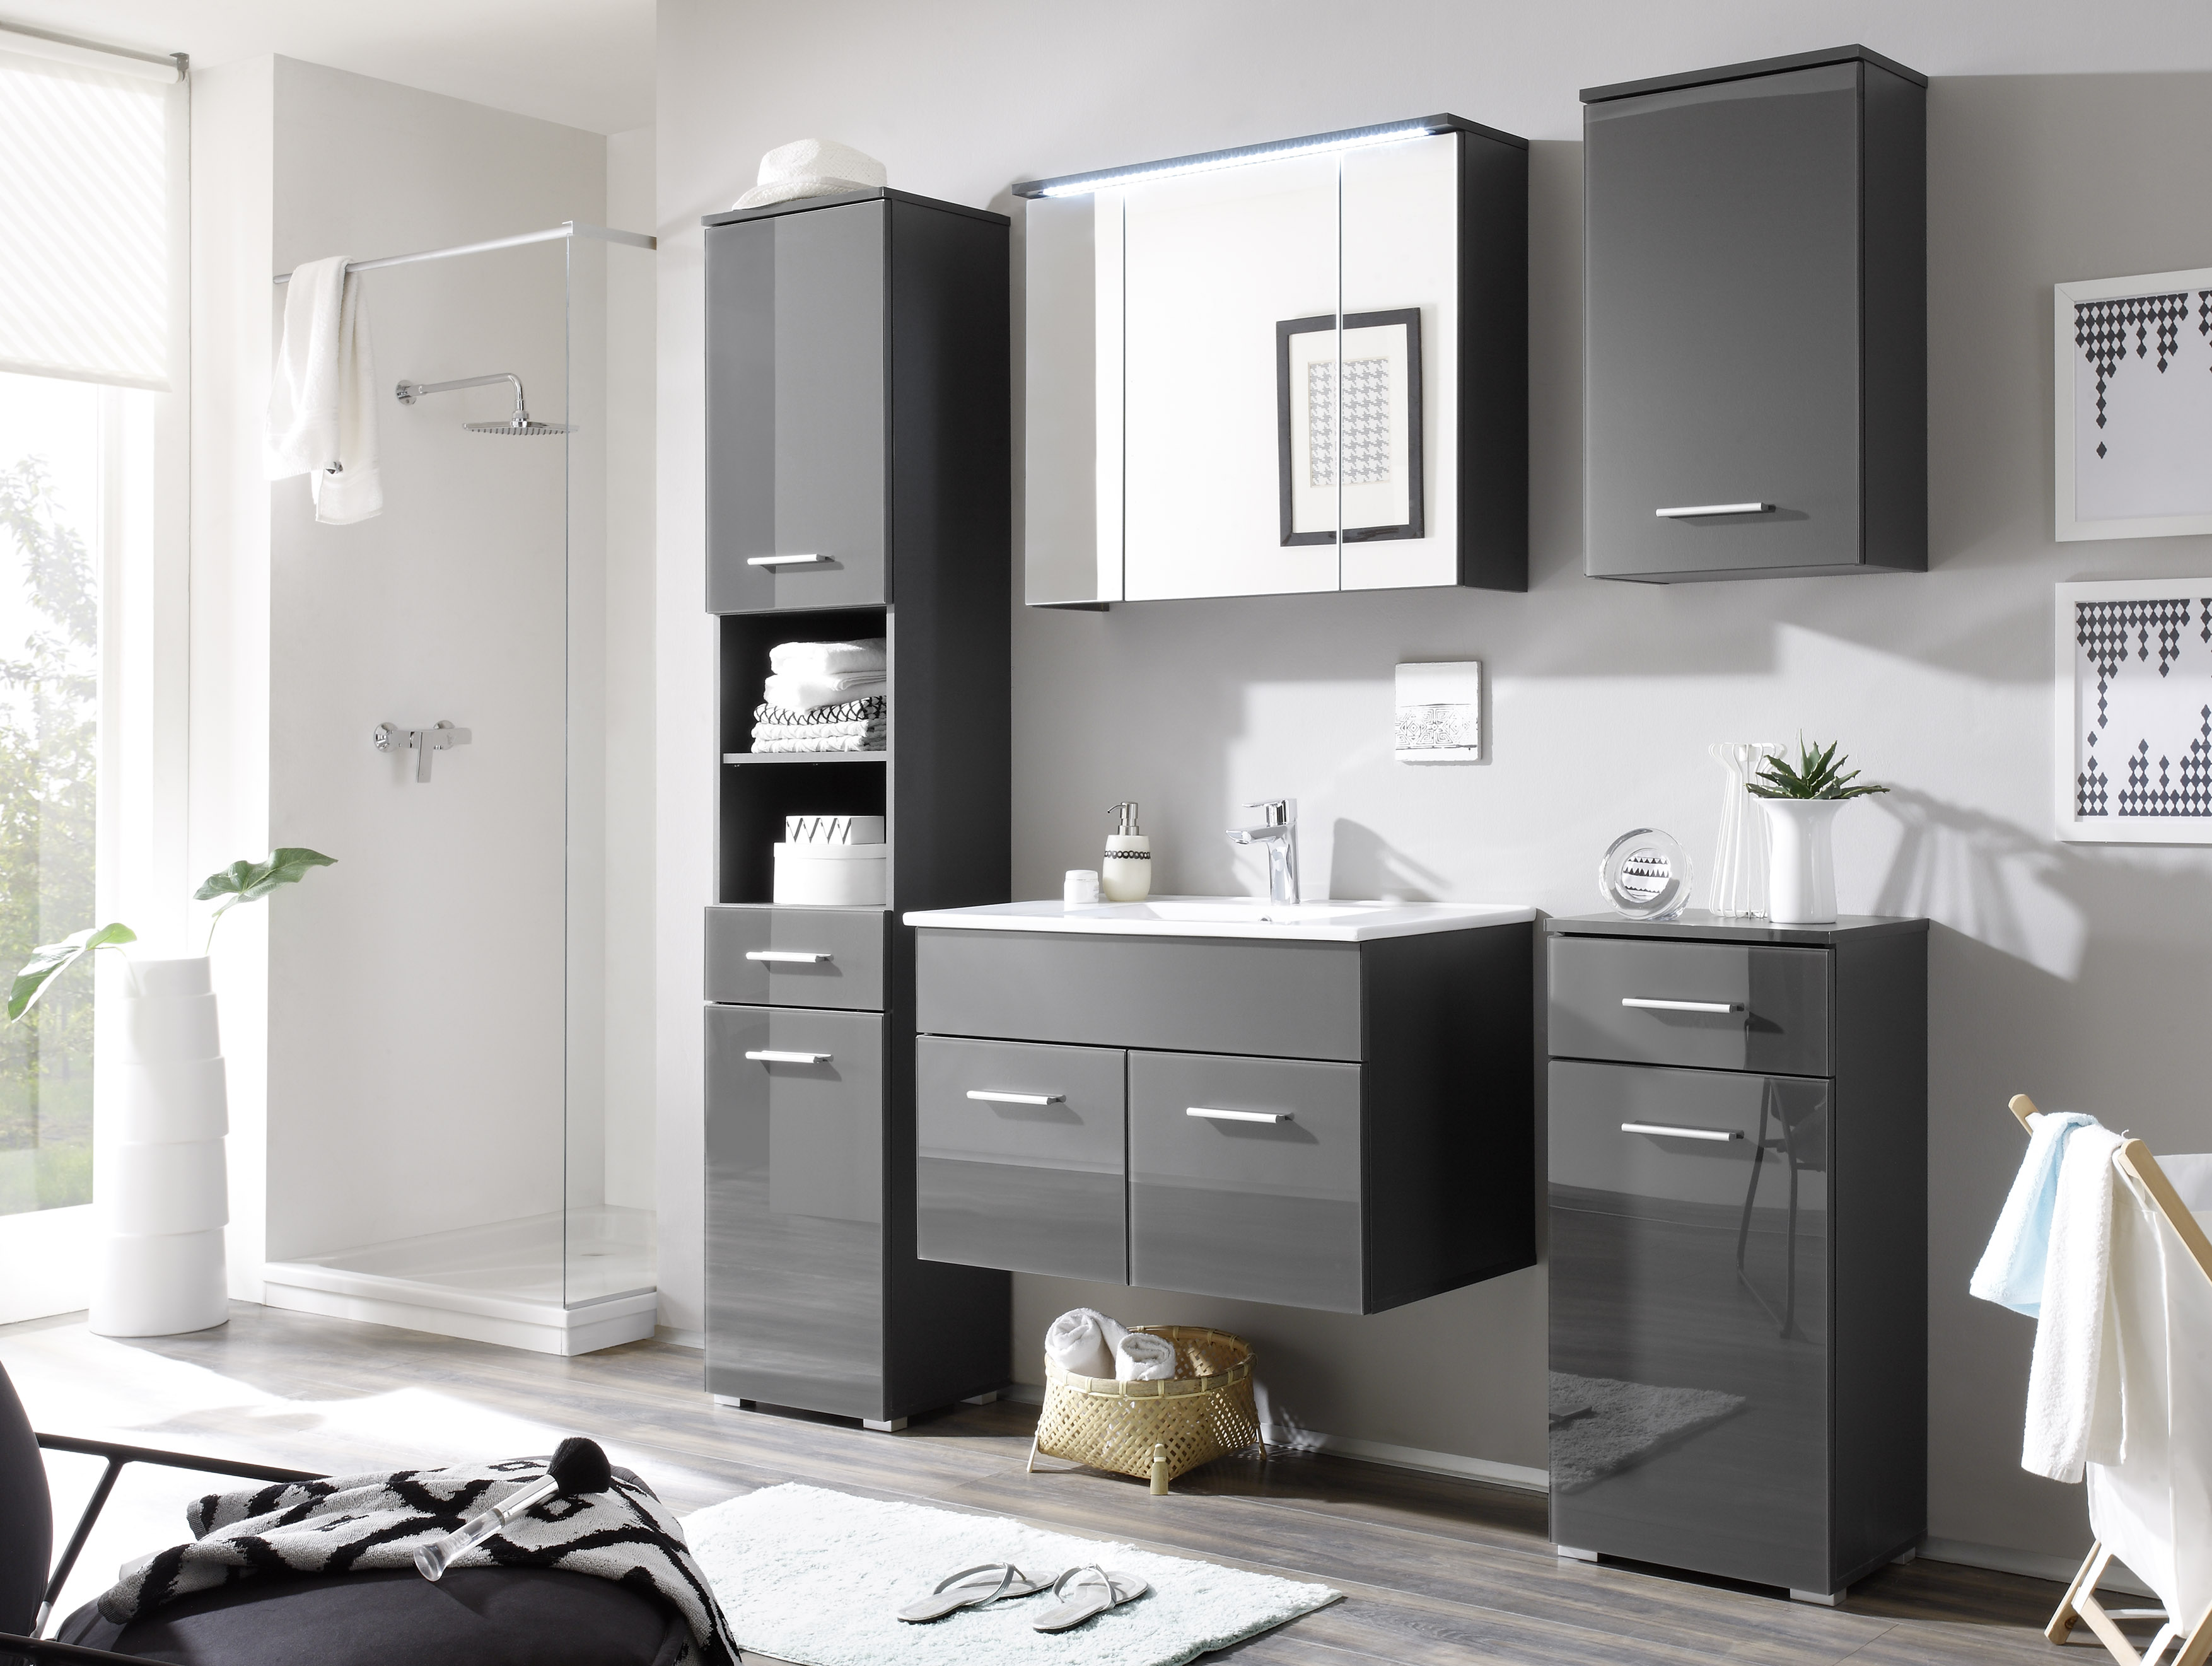 grey badezimmer set komplettset glas grau bad badezimmer komplettsets. Black Bedroom Furniture Sets. Home Design Ideas